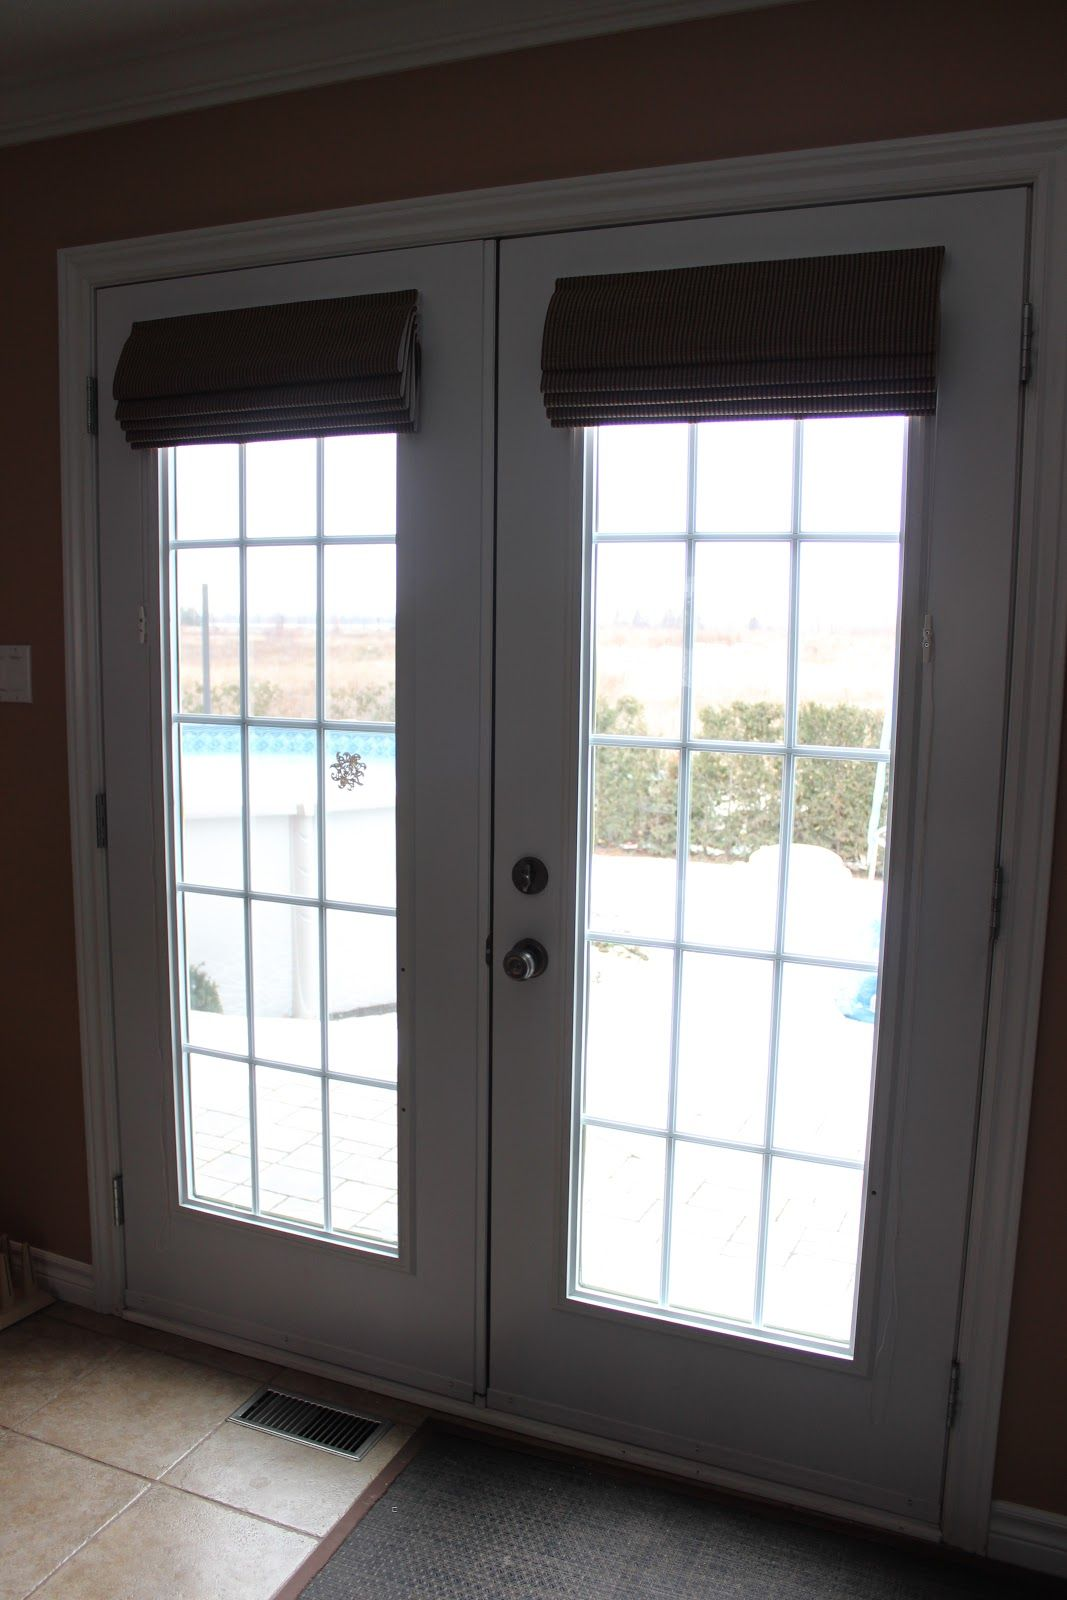 Ideas For French Door Coverings Part - 18: Buy Customized Shades For French Doors | Drapery Room Ideas